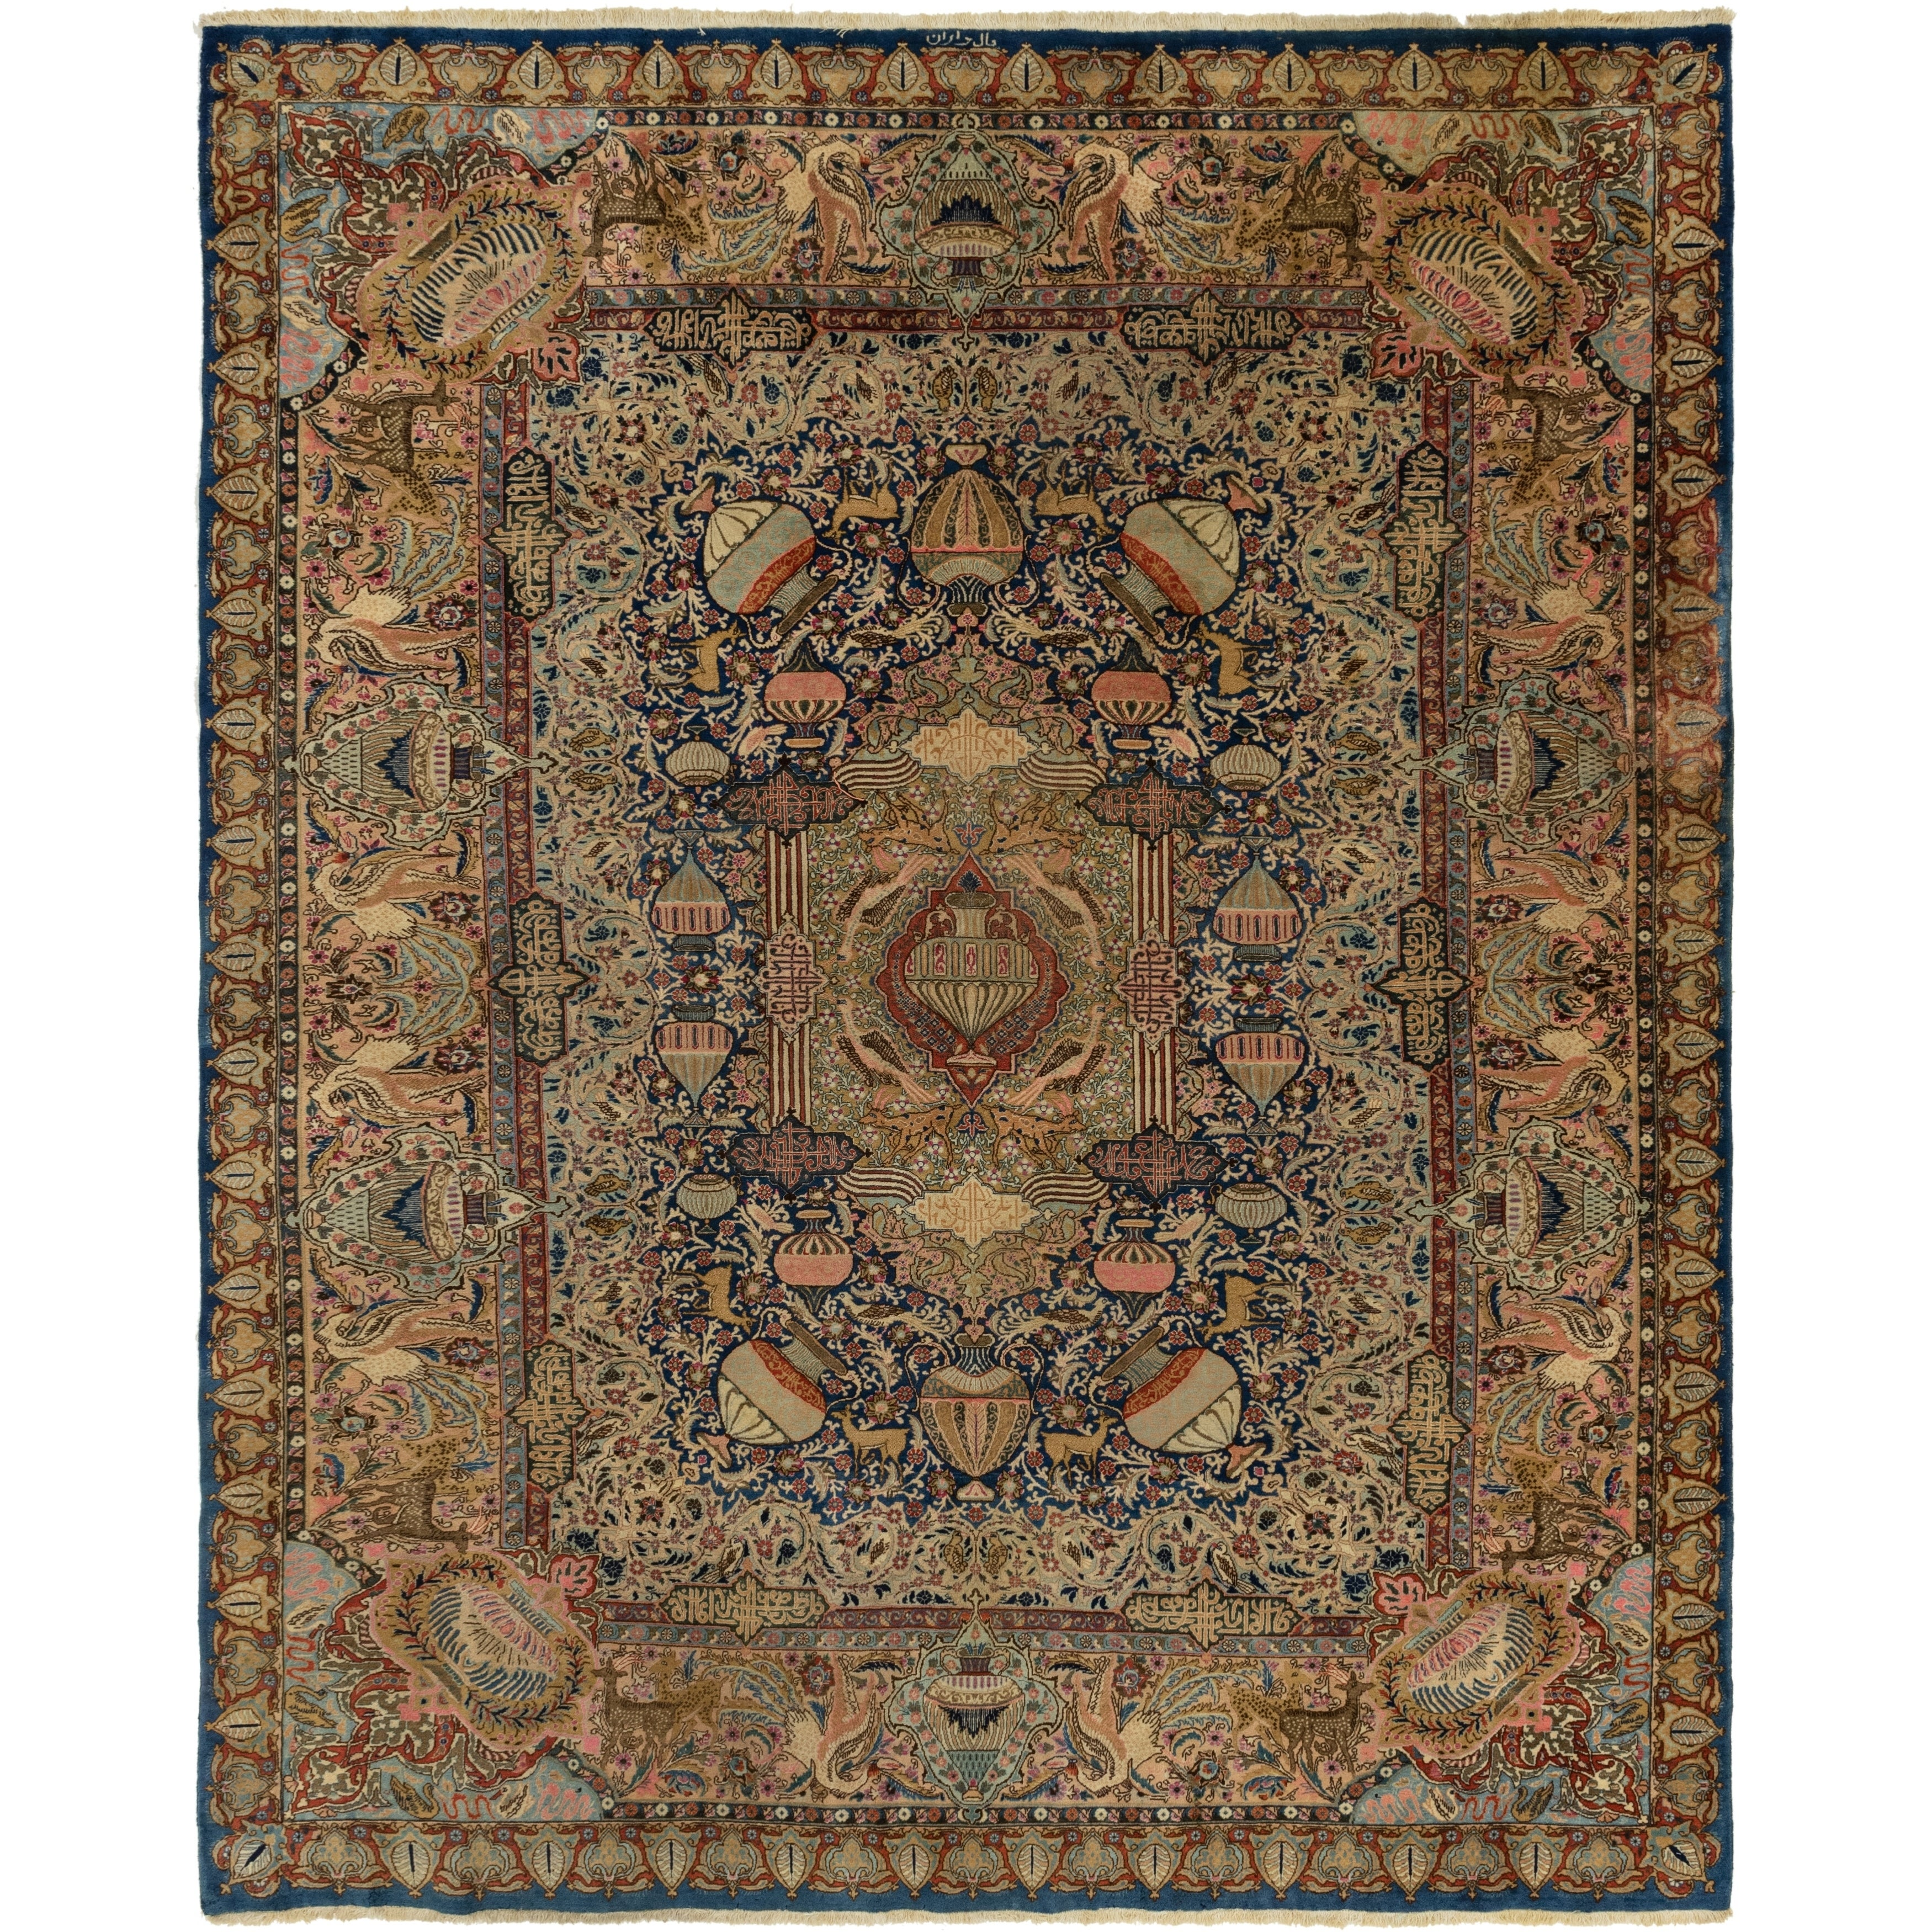 Hand Knotted Kashmar Semi Antique Wool Area Rug - 9 8 x 12 2 (Navy blue - 9 8 x 12 2)